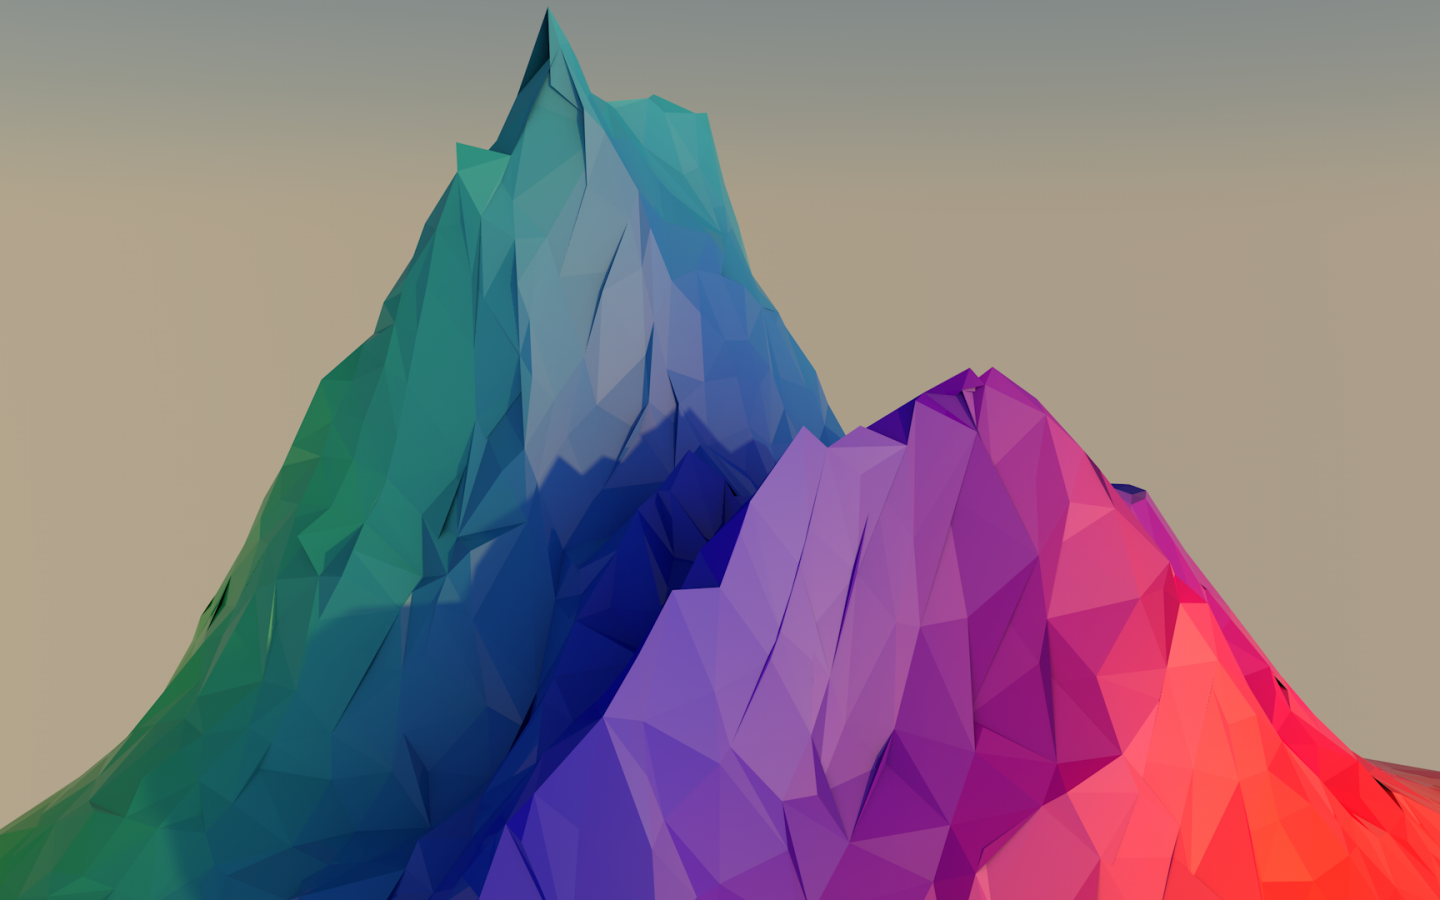 Polychromatic, Mountain, Low Poly - Low Poly Wallpaper Hd , HD Wallpaper & Backgrounds